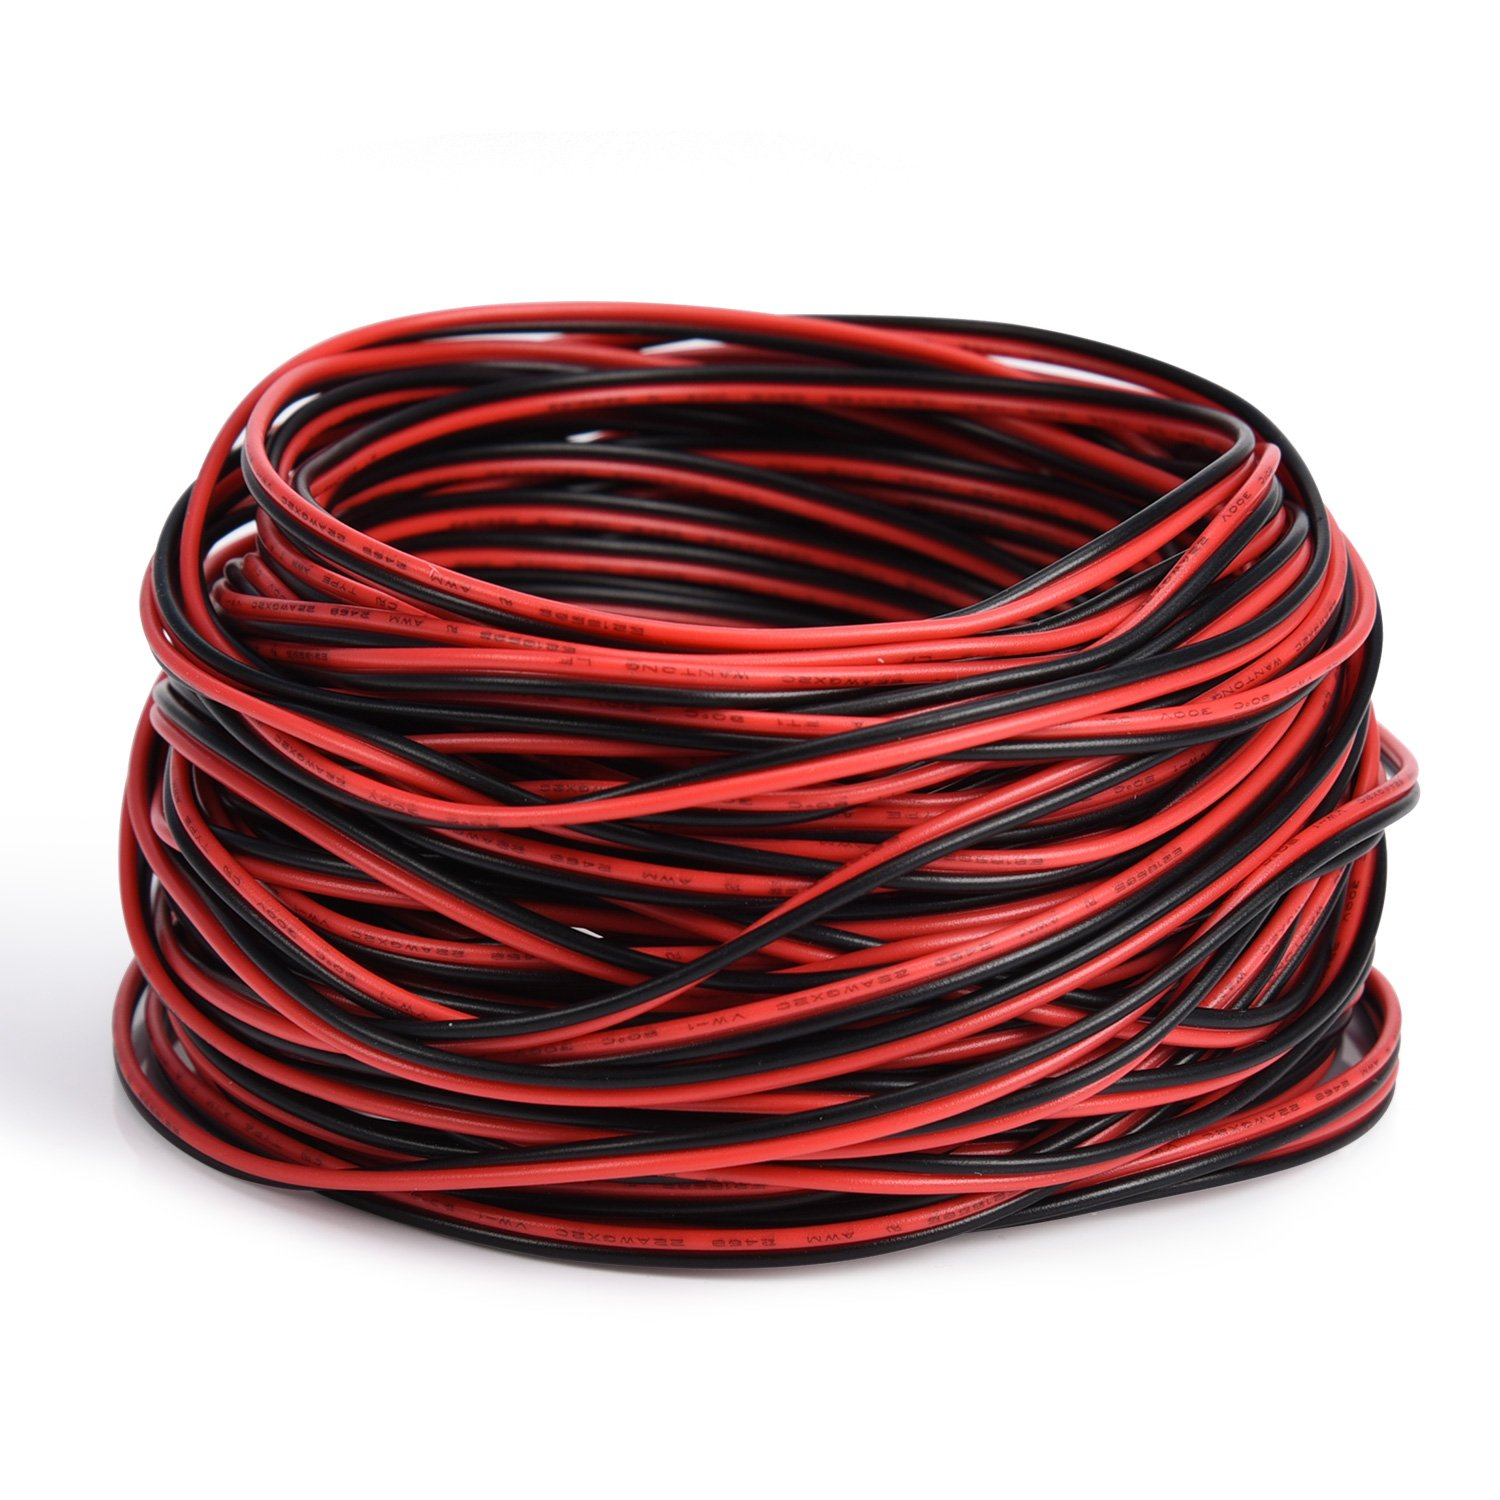 65.6ft Extension Cable Wire Cord JACKYLED 20M 22awg Cable for Led Strips Single Color 3528 5050